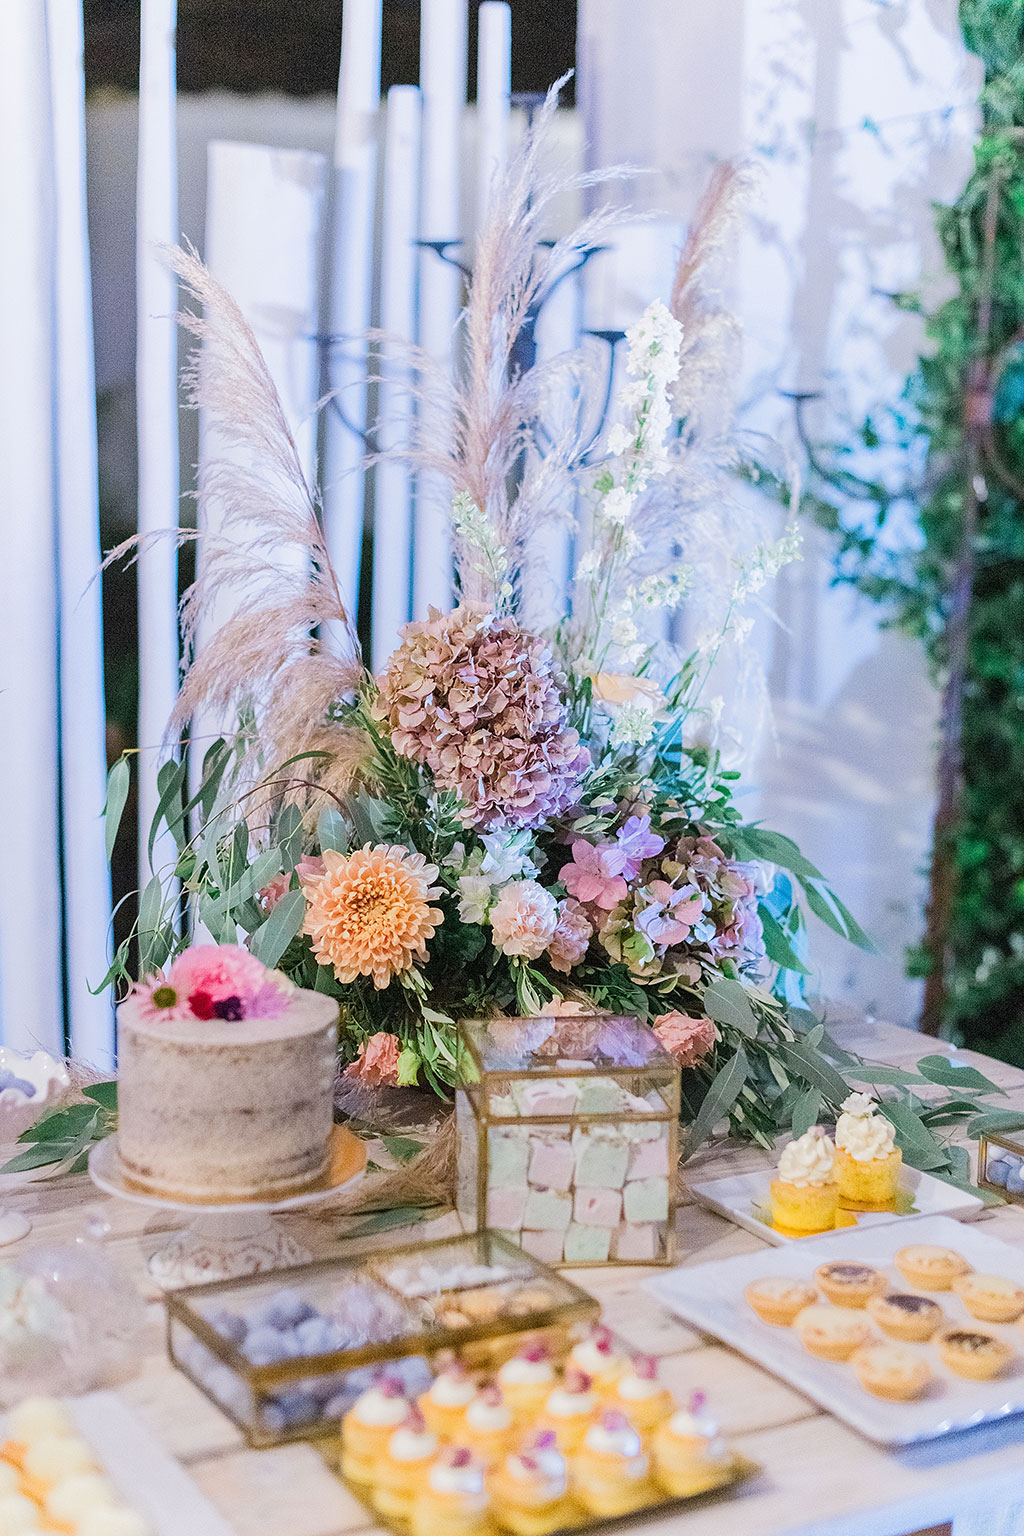 wedding decoration with flowers and sweets